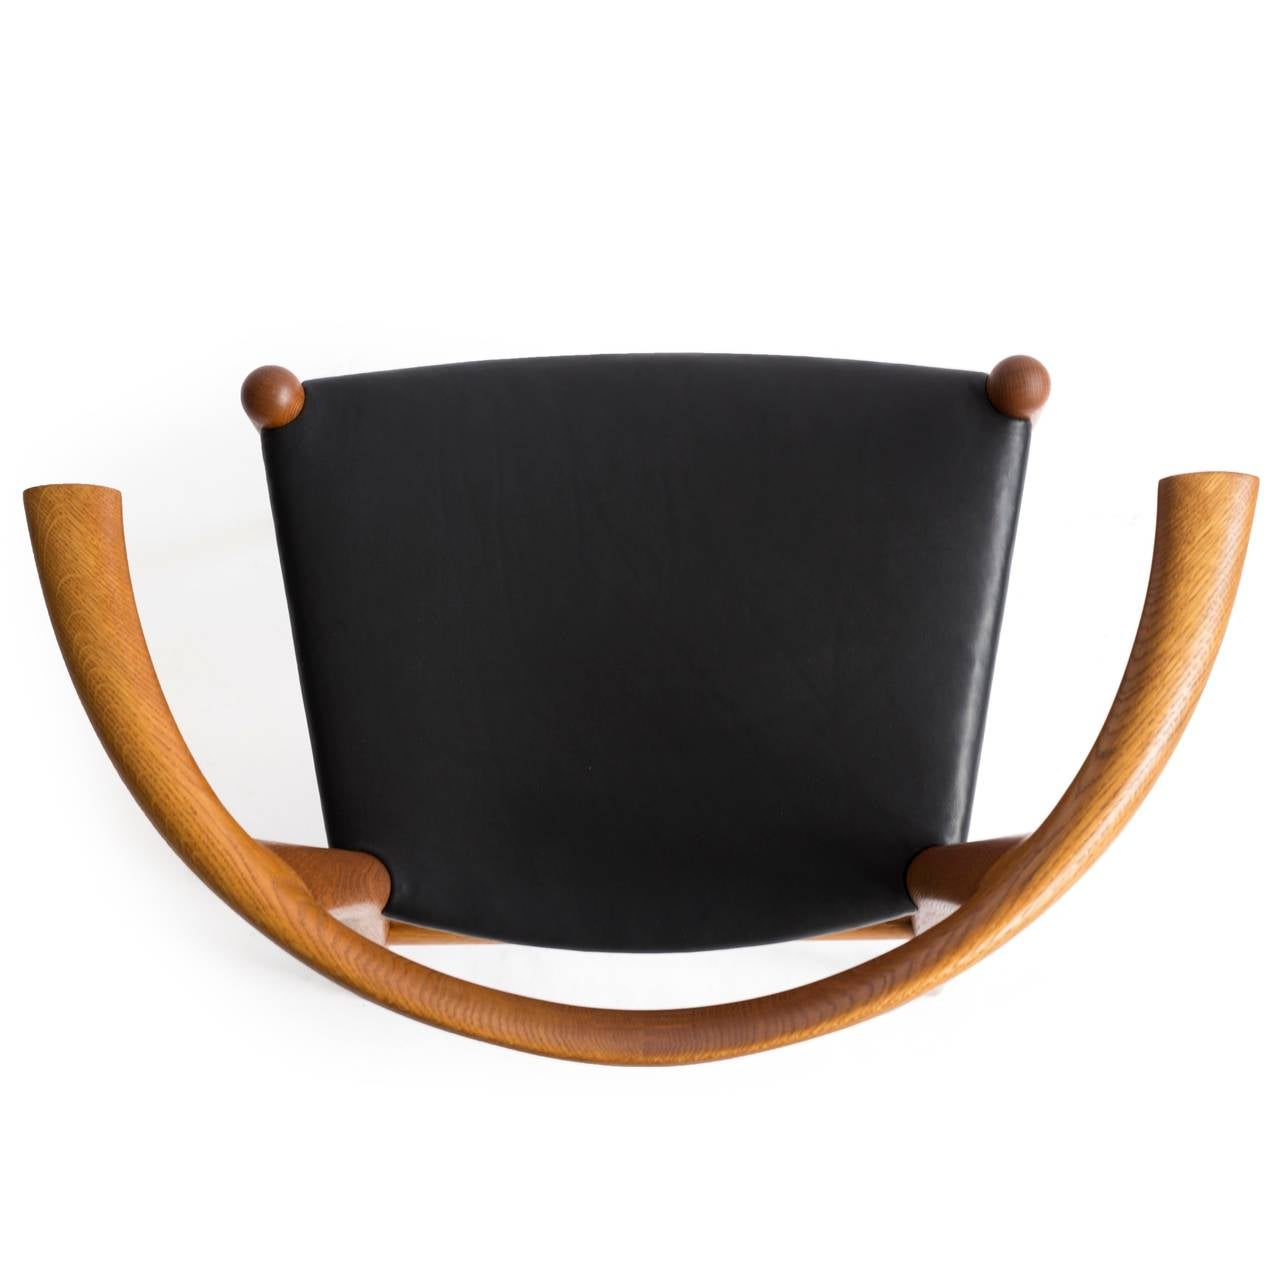 Hans J. Wegner 'Bull Chair' 7